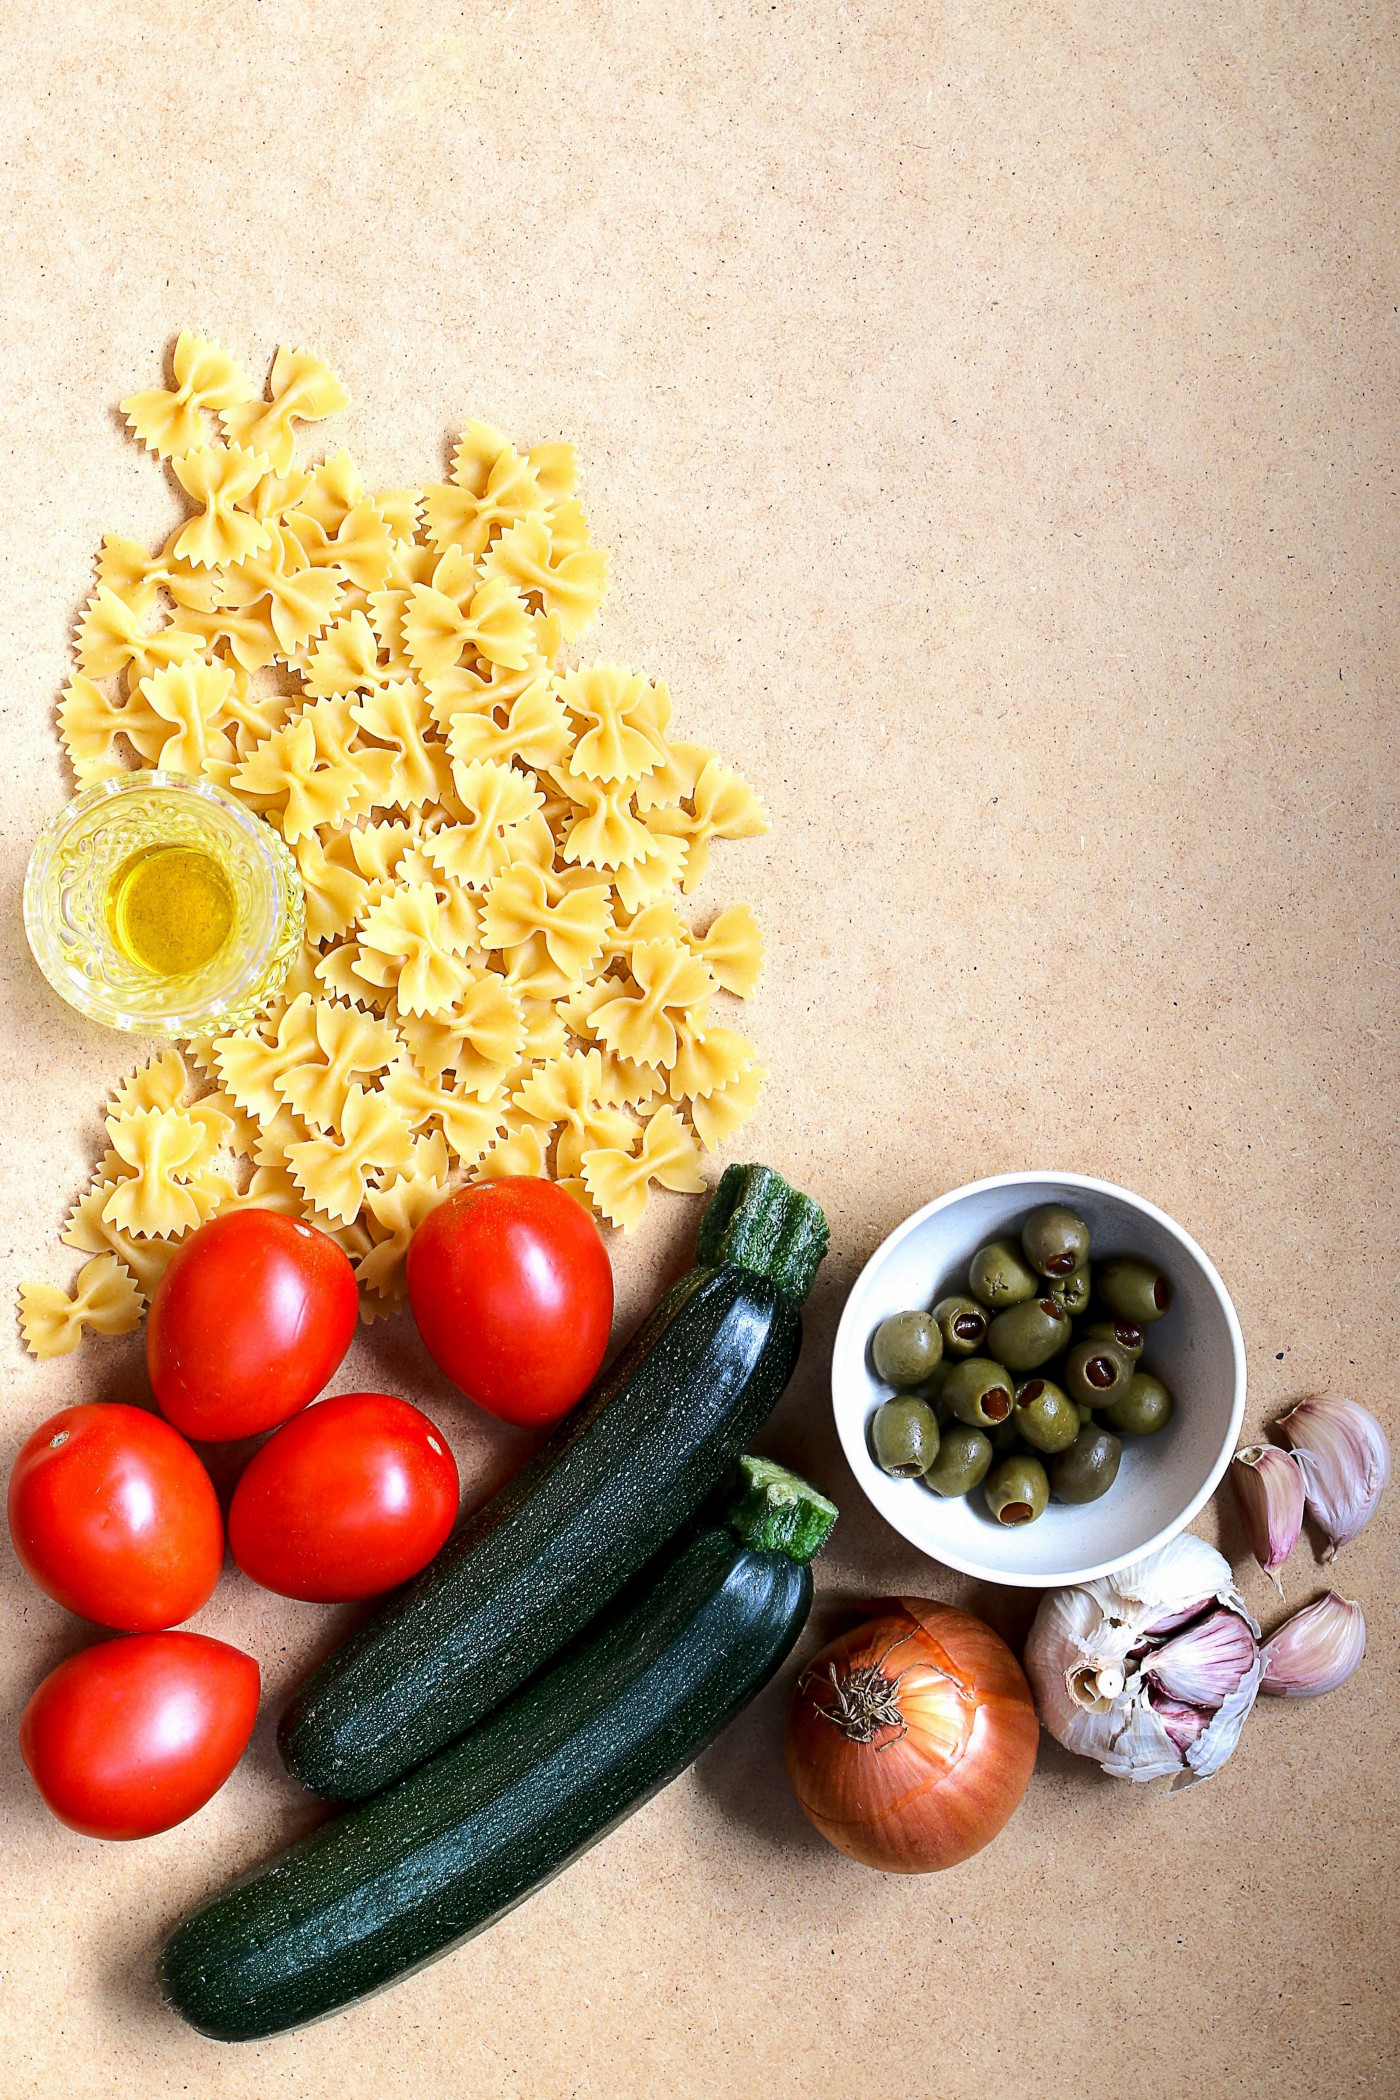 bow tie pasta, olive oil, tomatoes, zucchini, olives, garlic and onion